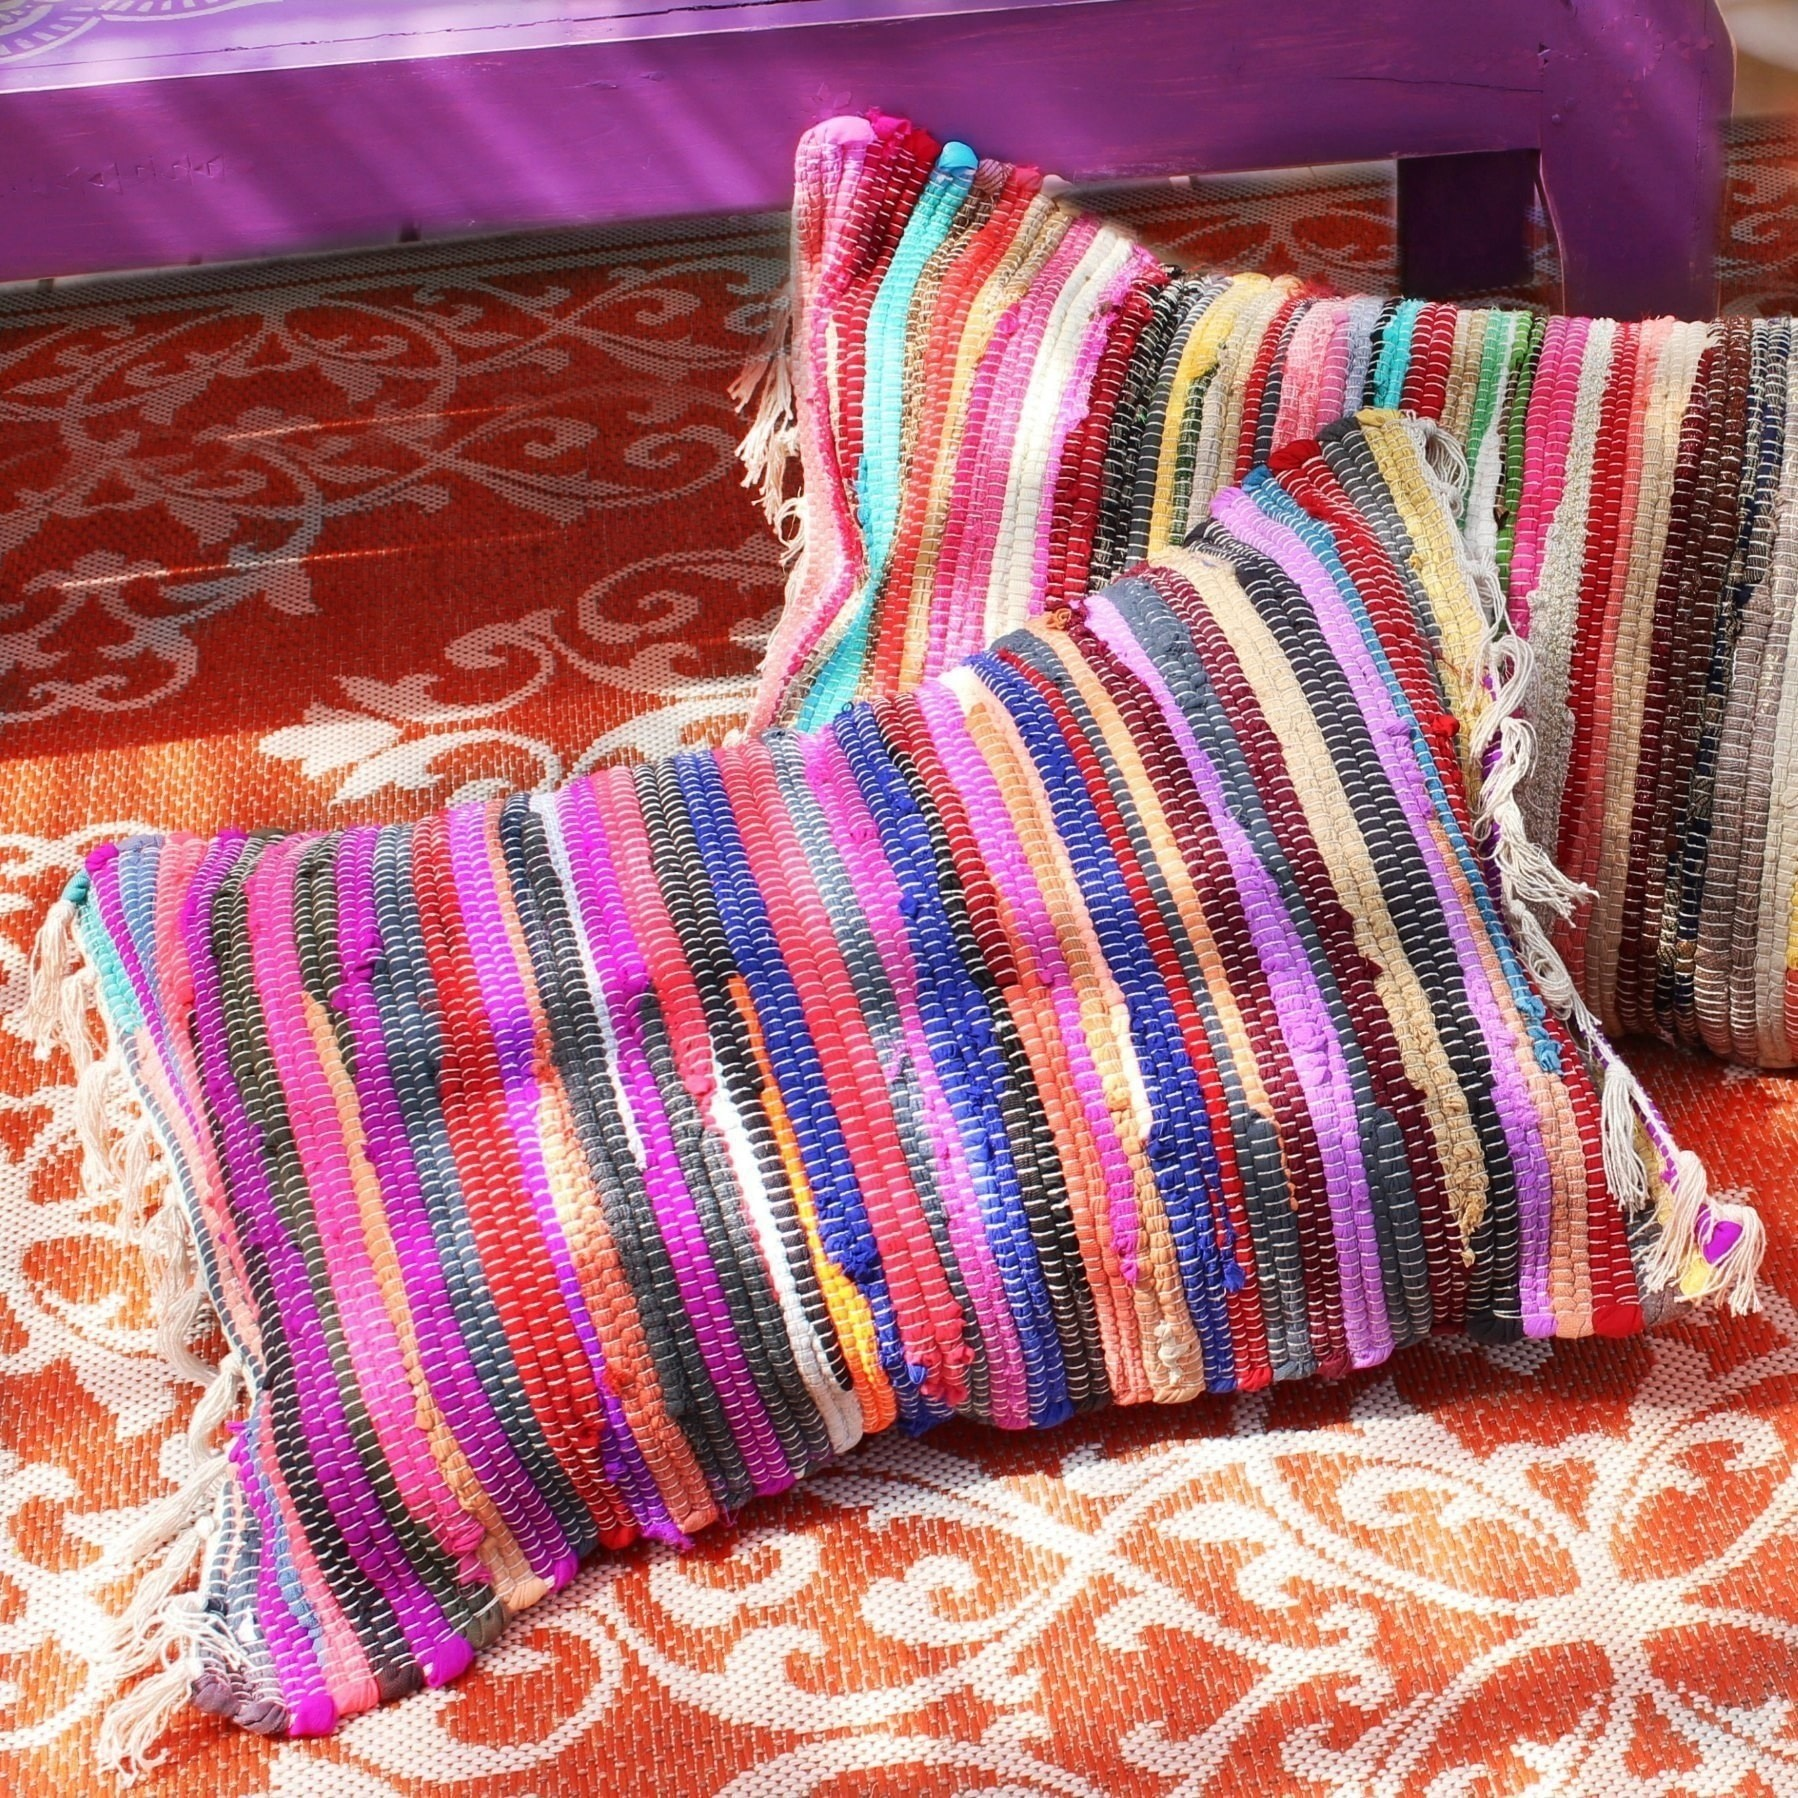 No Sew Rag Rug Pillows ? How To Make A Floor Cushion ? Sewing on Cut Out + Keep